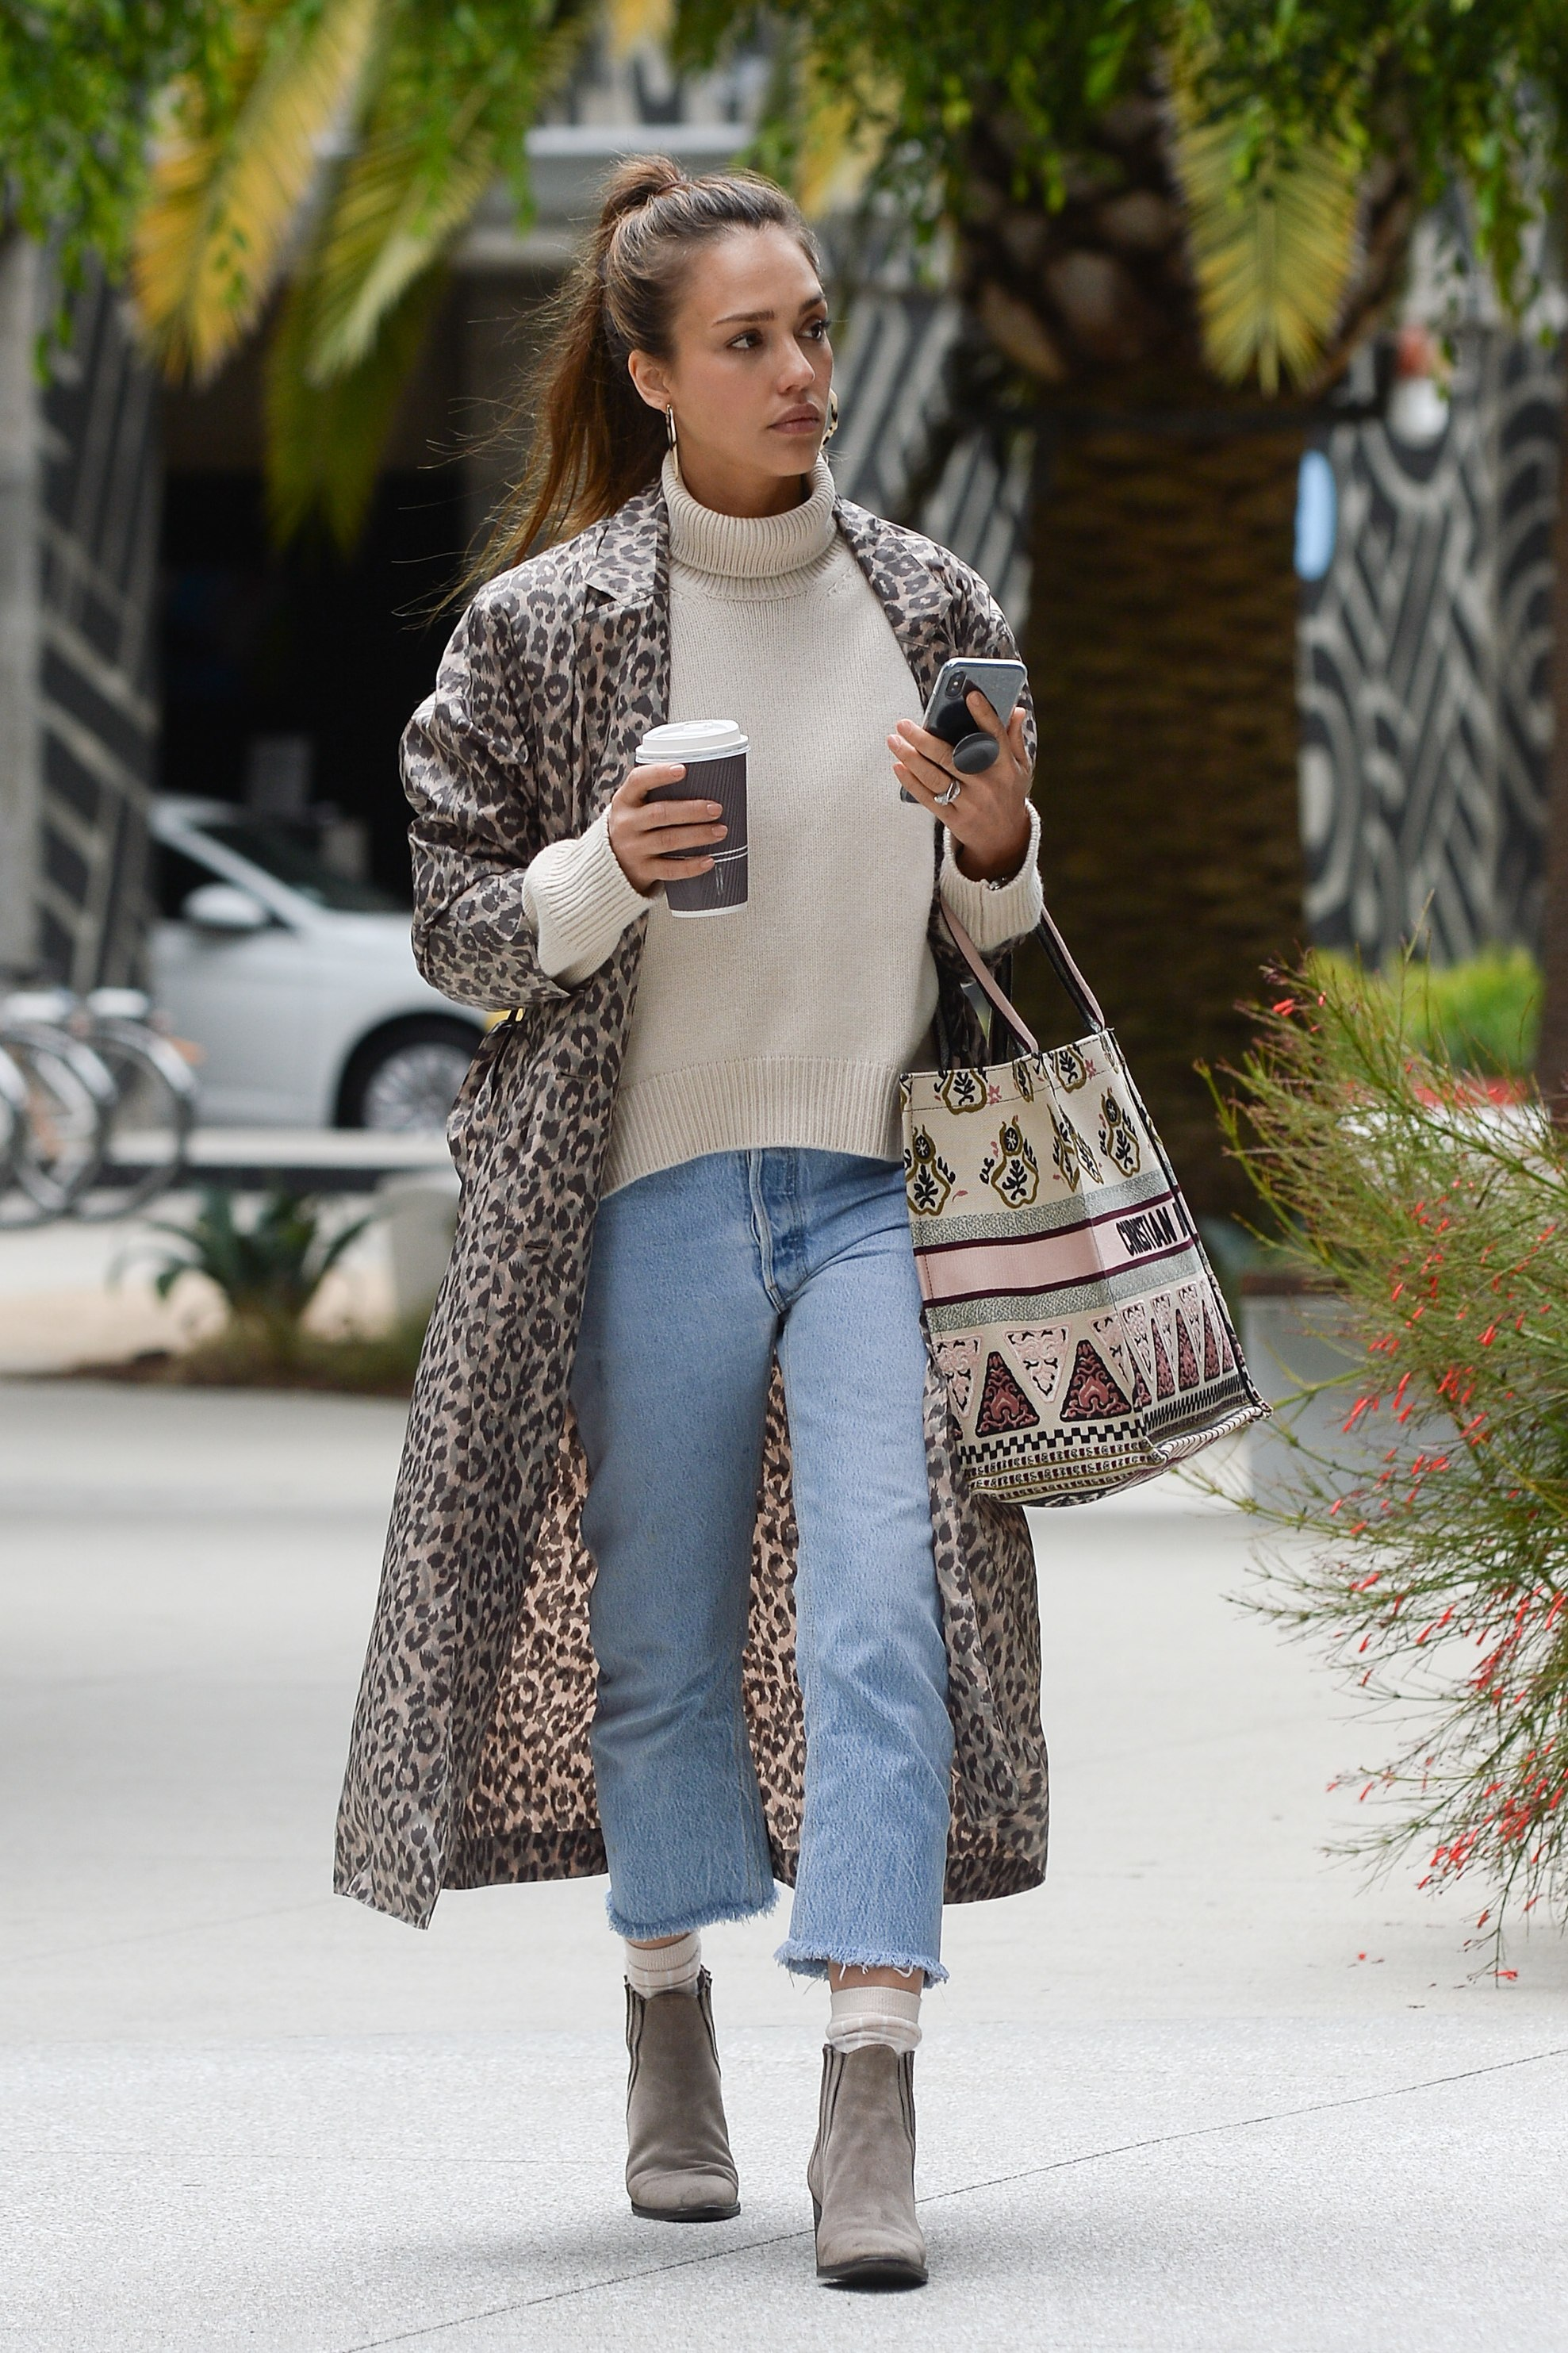 coat animal print animal leopard print jessica alba celebrity spring outfits jeans ankle boots